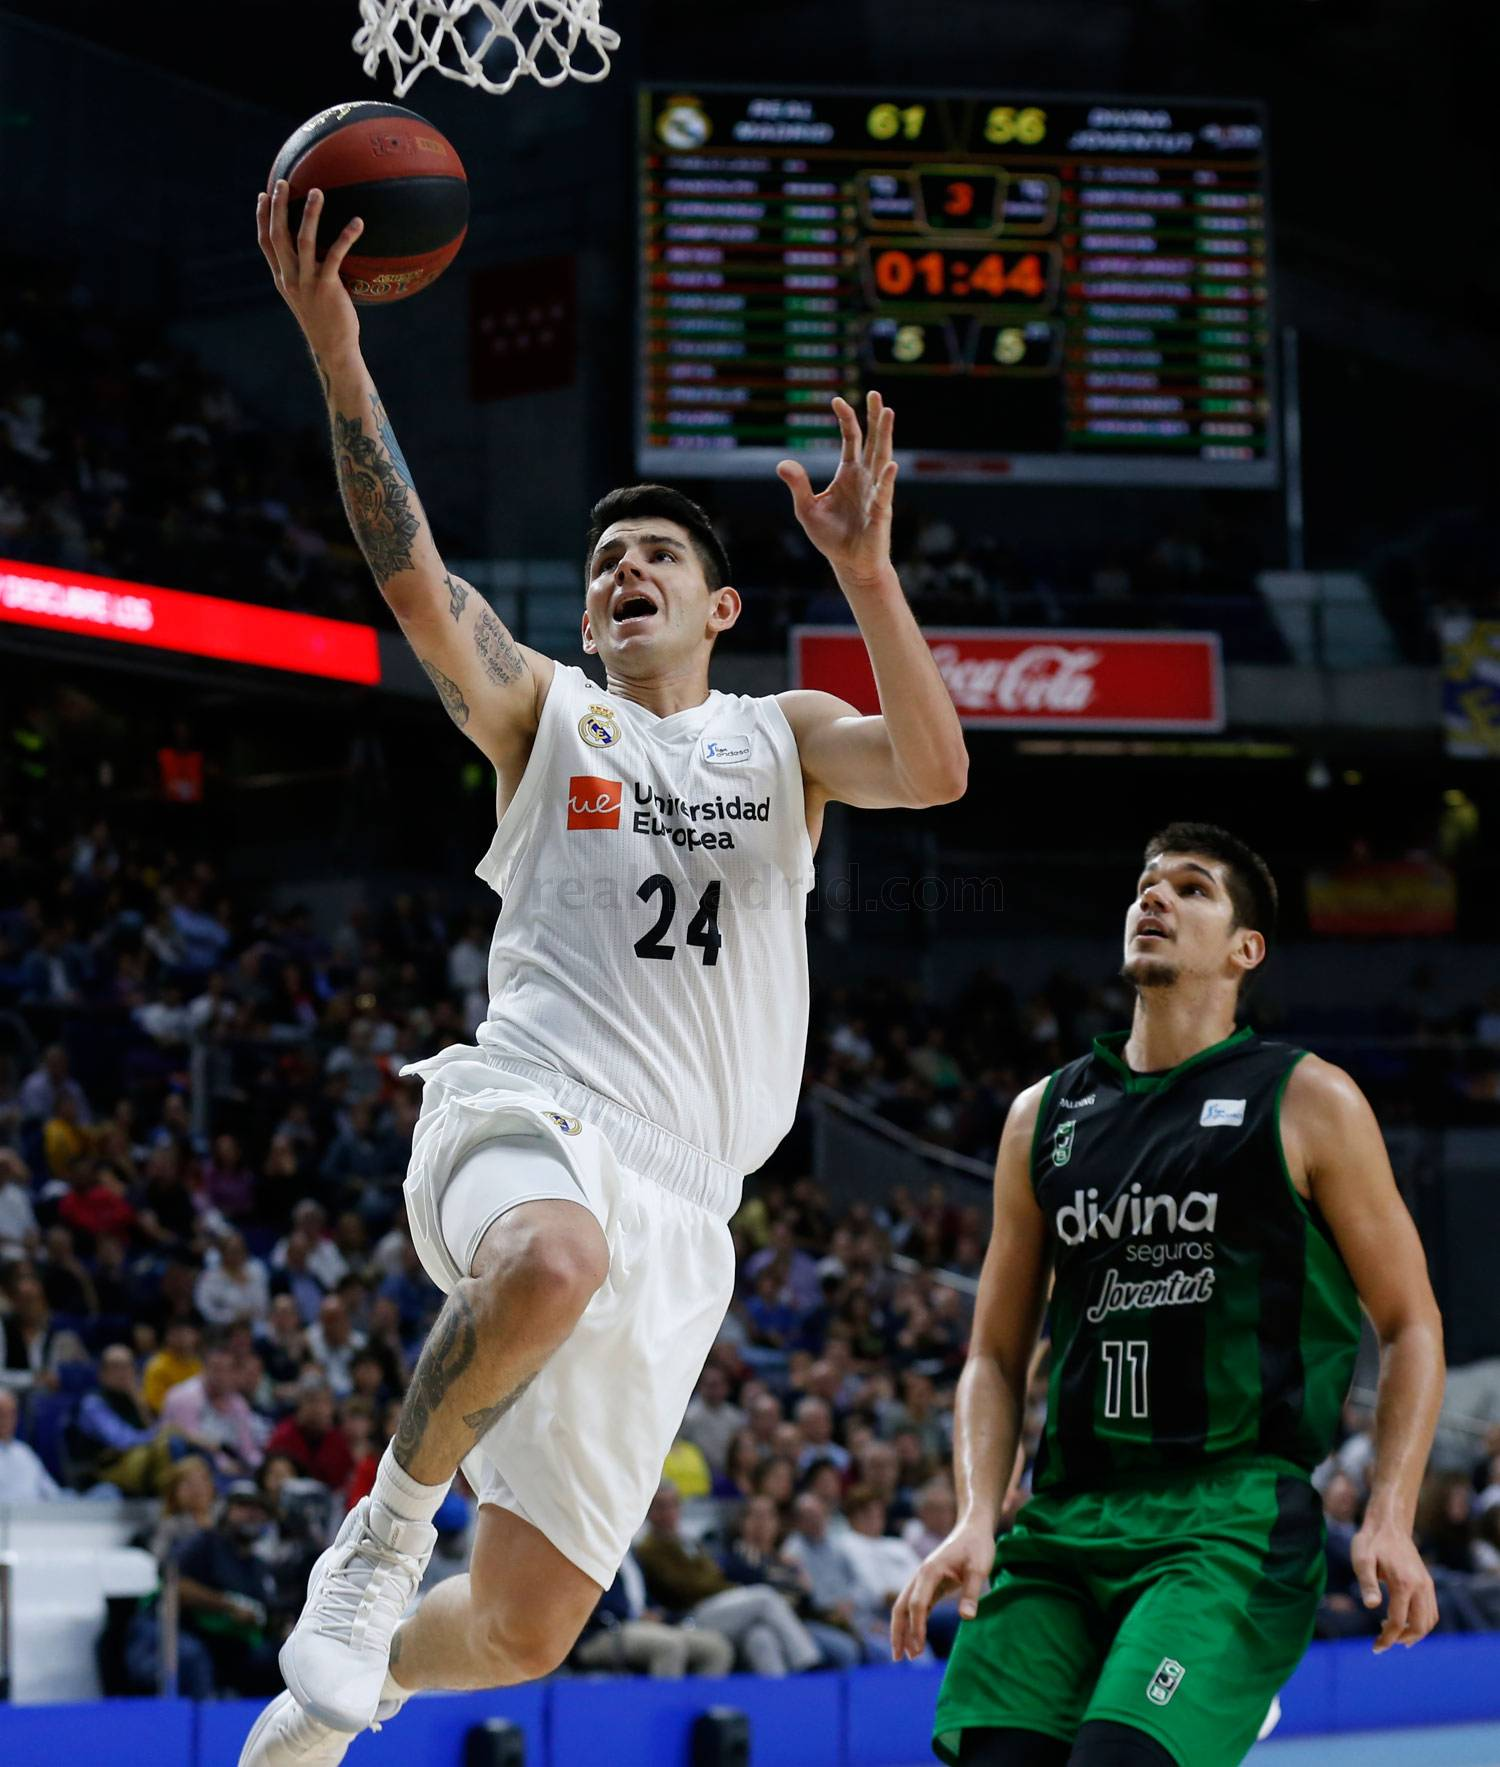 Real Madrid - Real Madrid - Divina Seguros Joventut - 14-10-2018